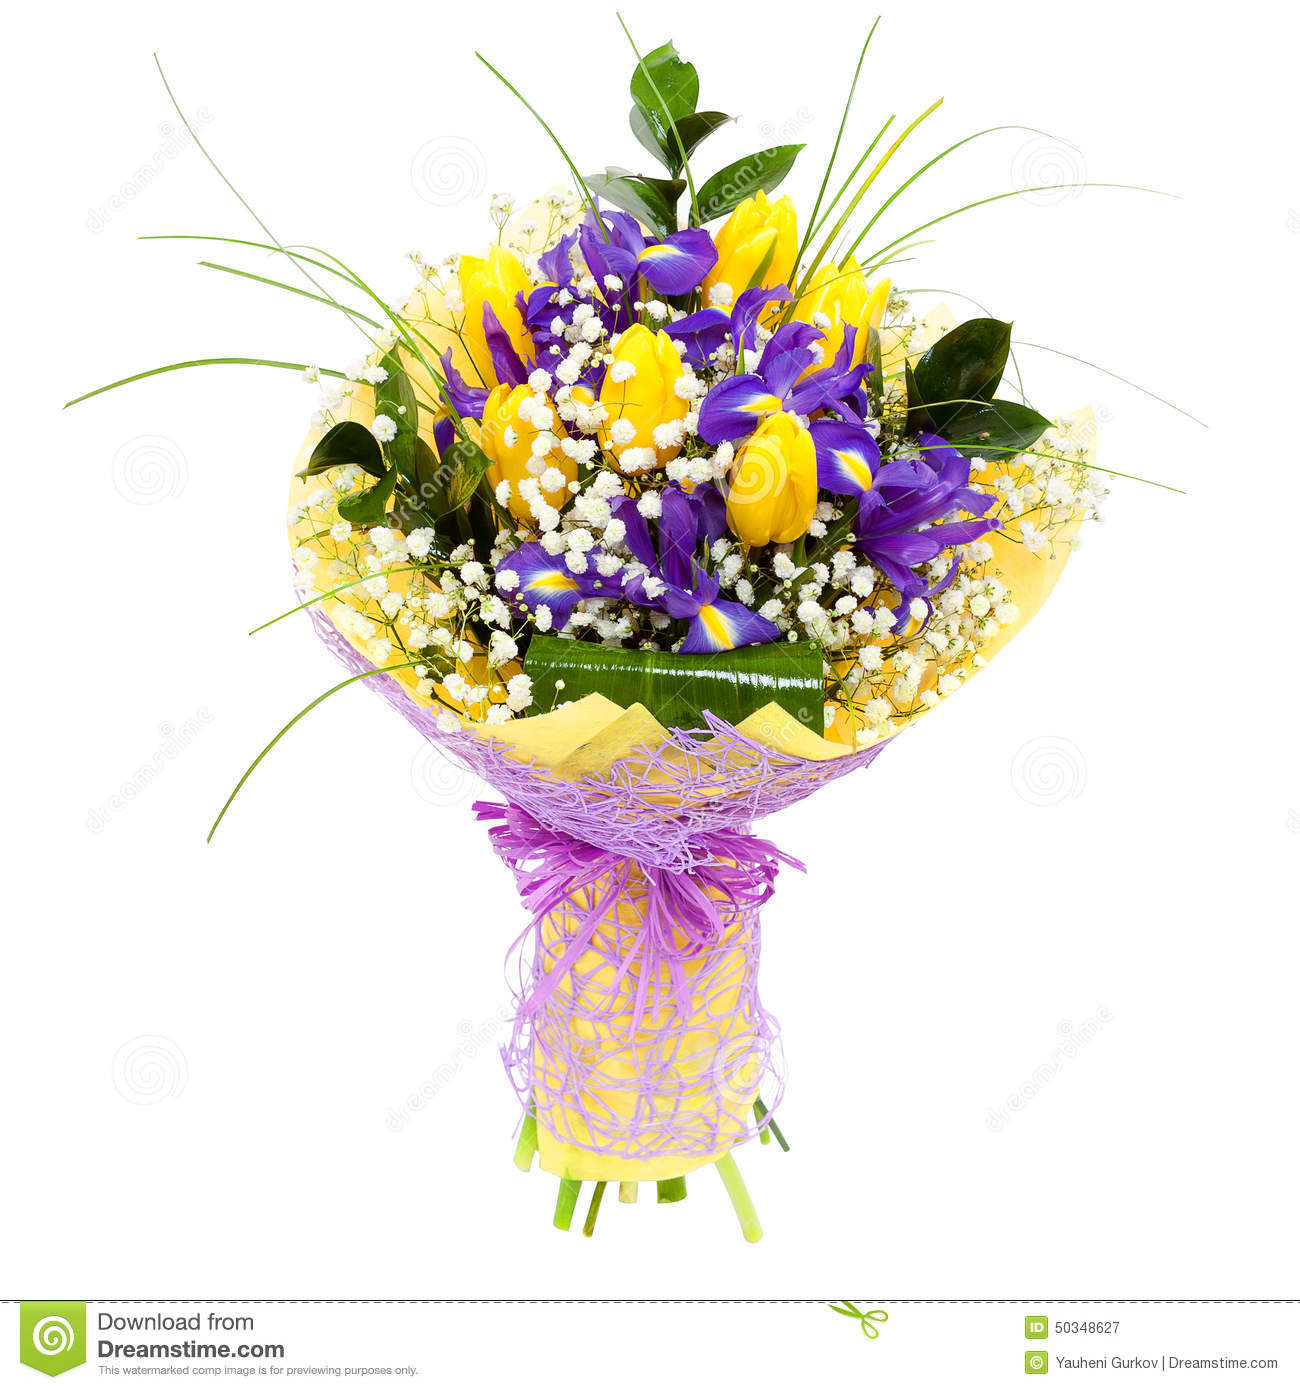 Tulips isolated flower arrangement bouquet stock image image of tulips isolated flower arrangement bouquet izmirmasajfo